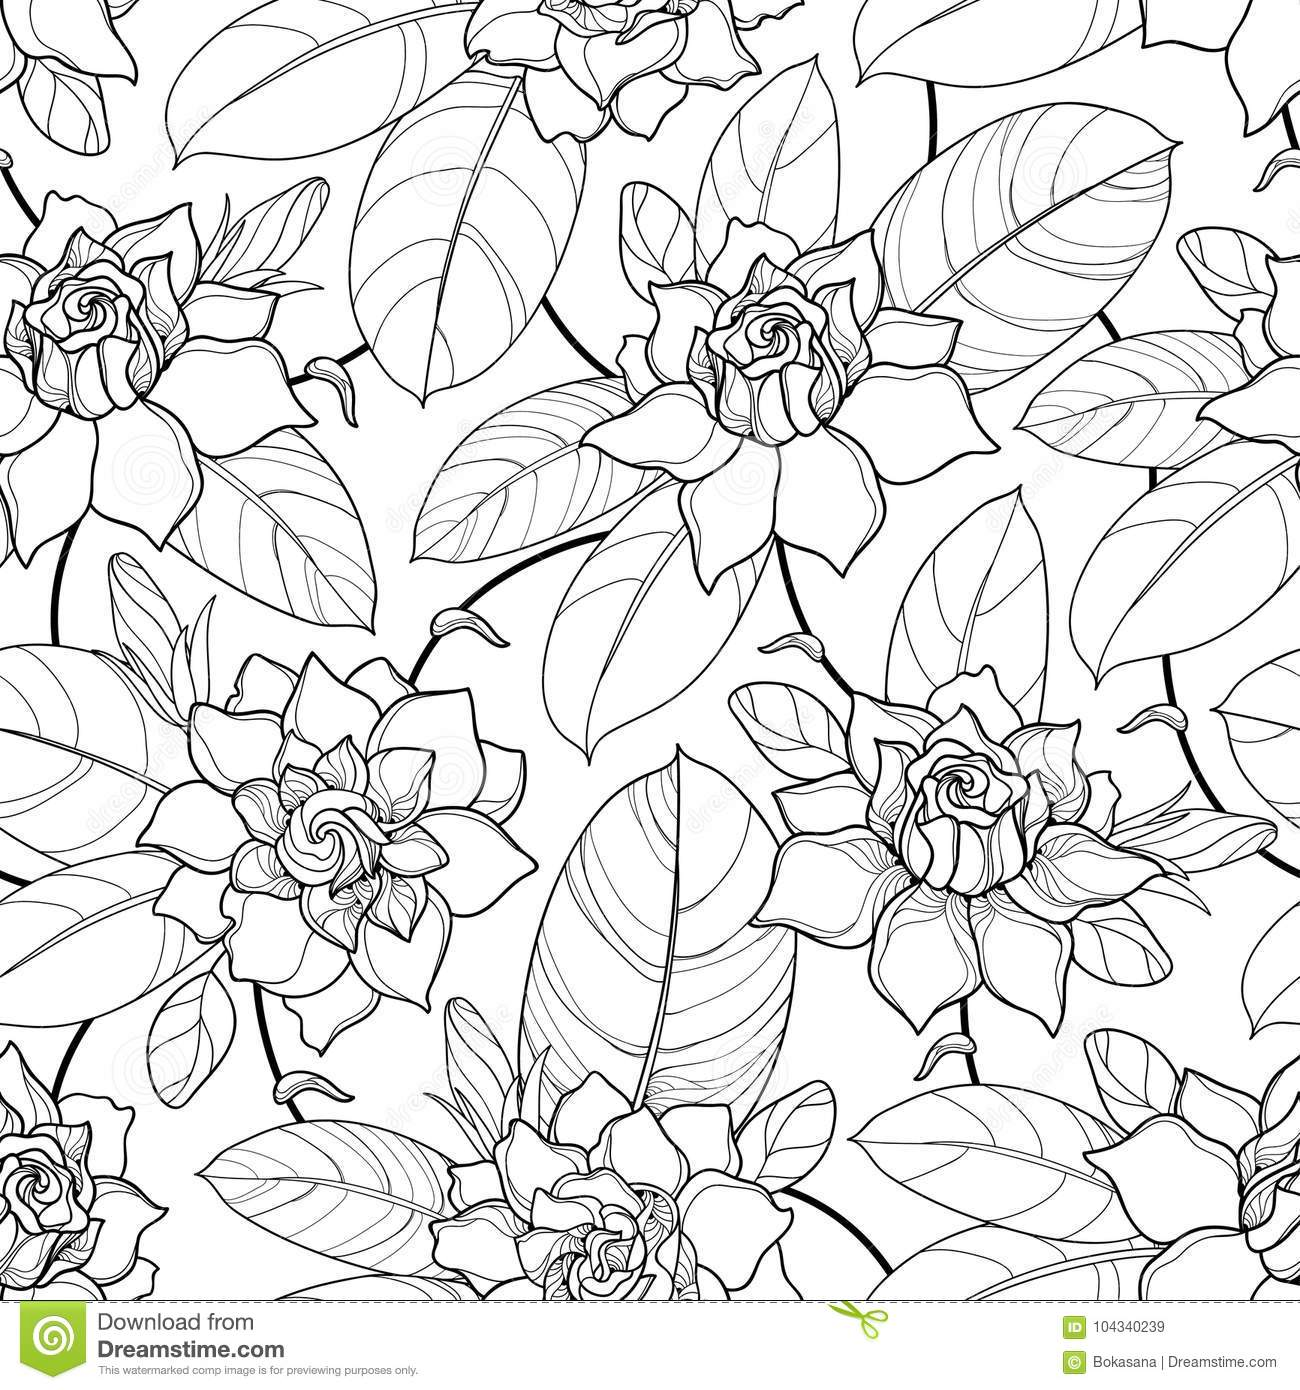 Ornate Flower Bud And Leaves In Black On The White Background Floral Pattern With Gardenia Contour Style For Summer Design Coloring Book